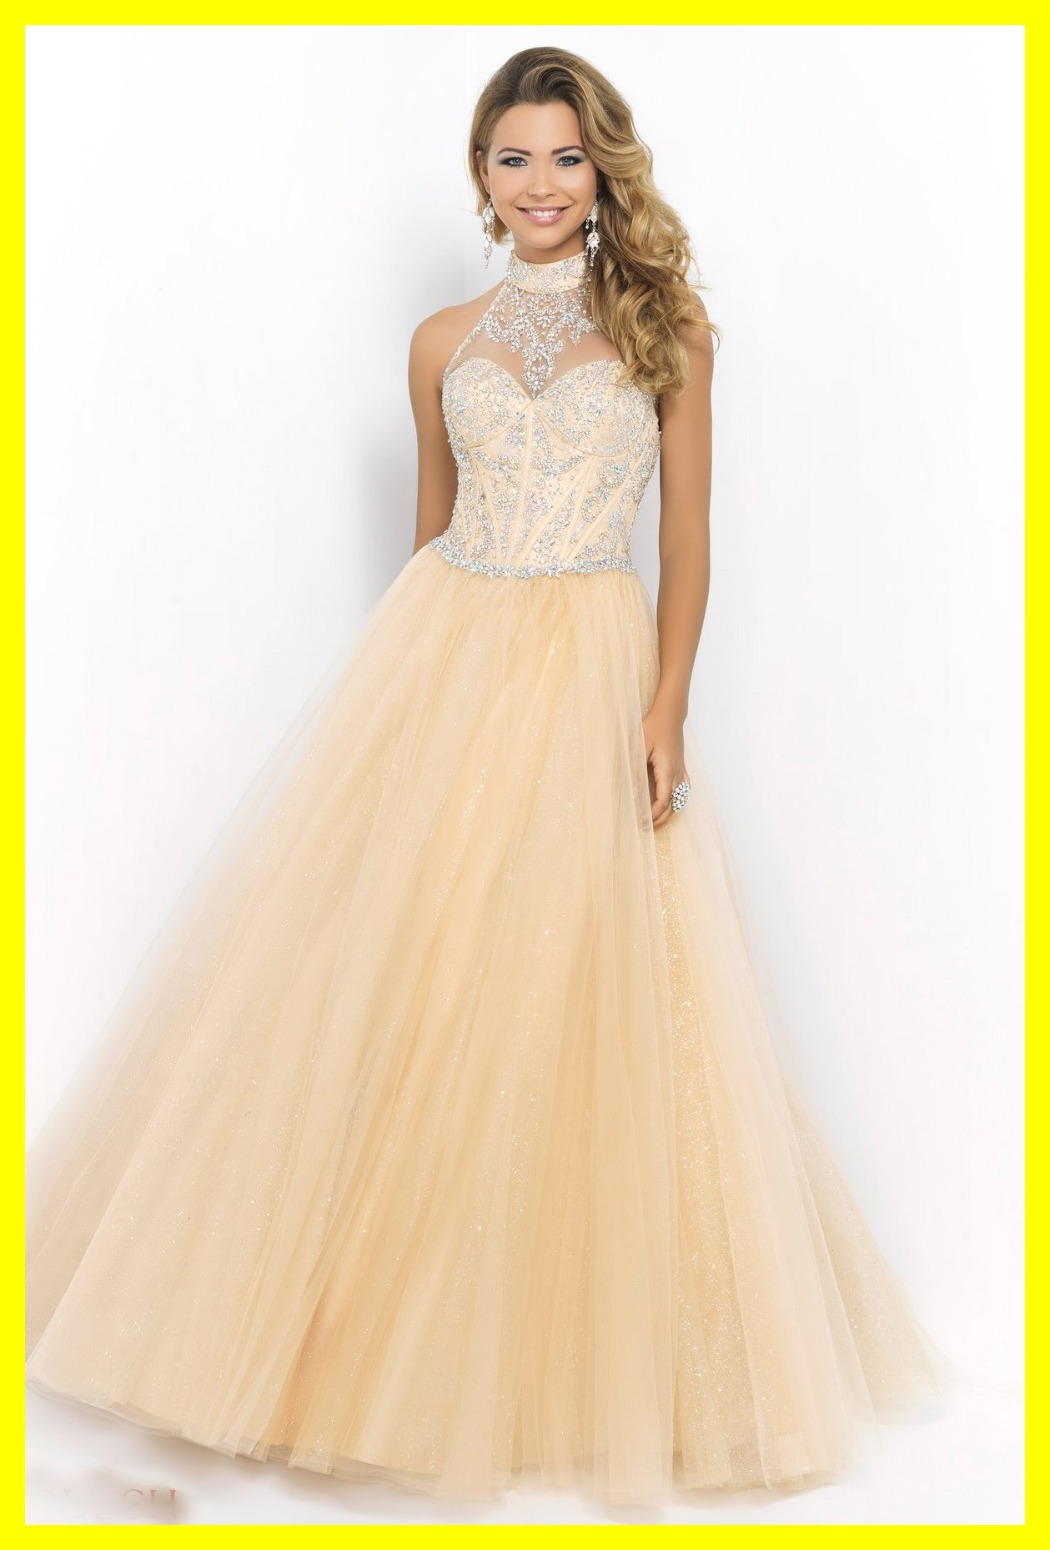 Formal Dress S Uk Gallery Dresses Design Ideas Images